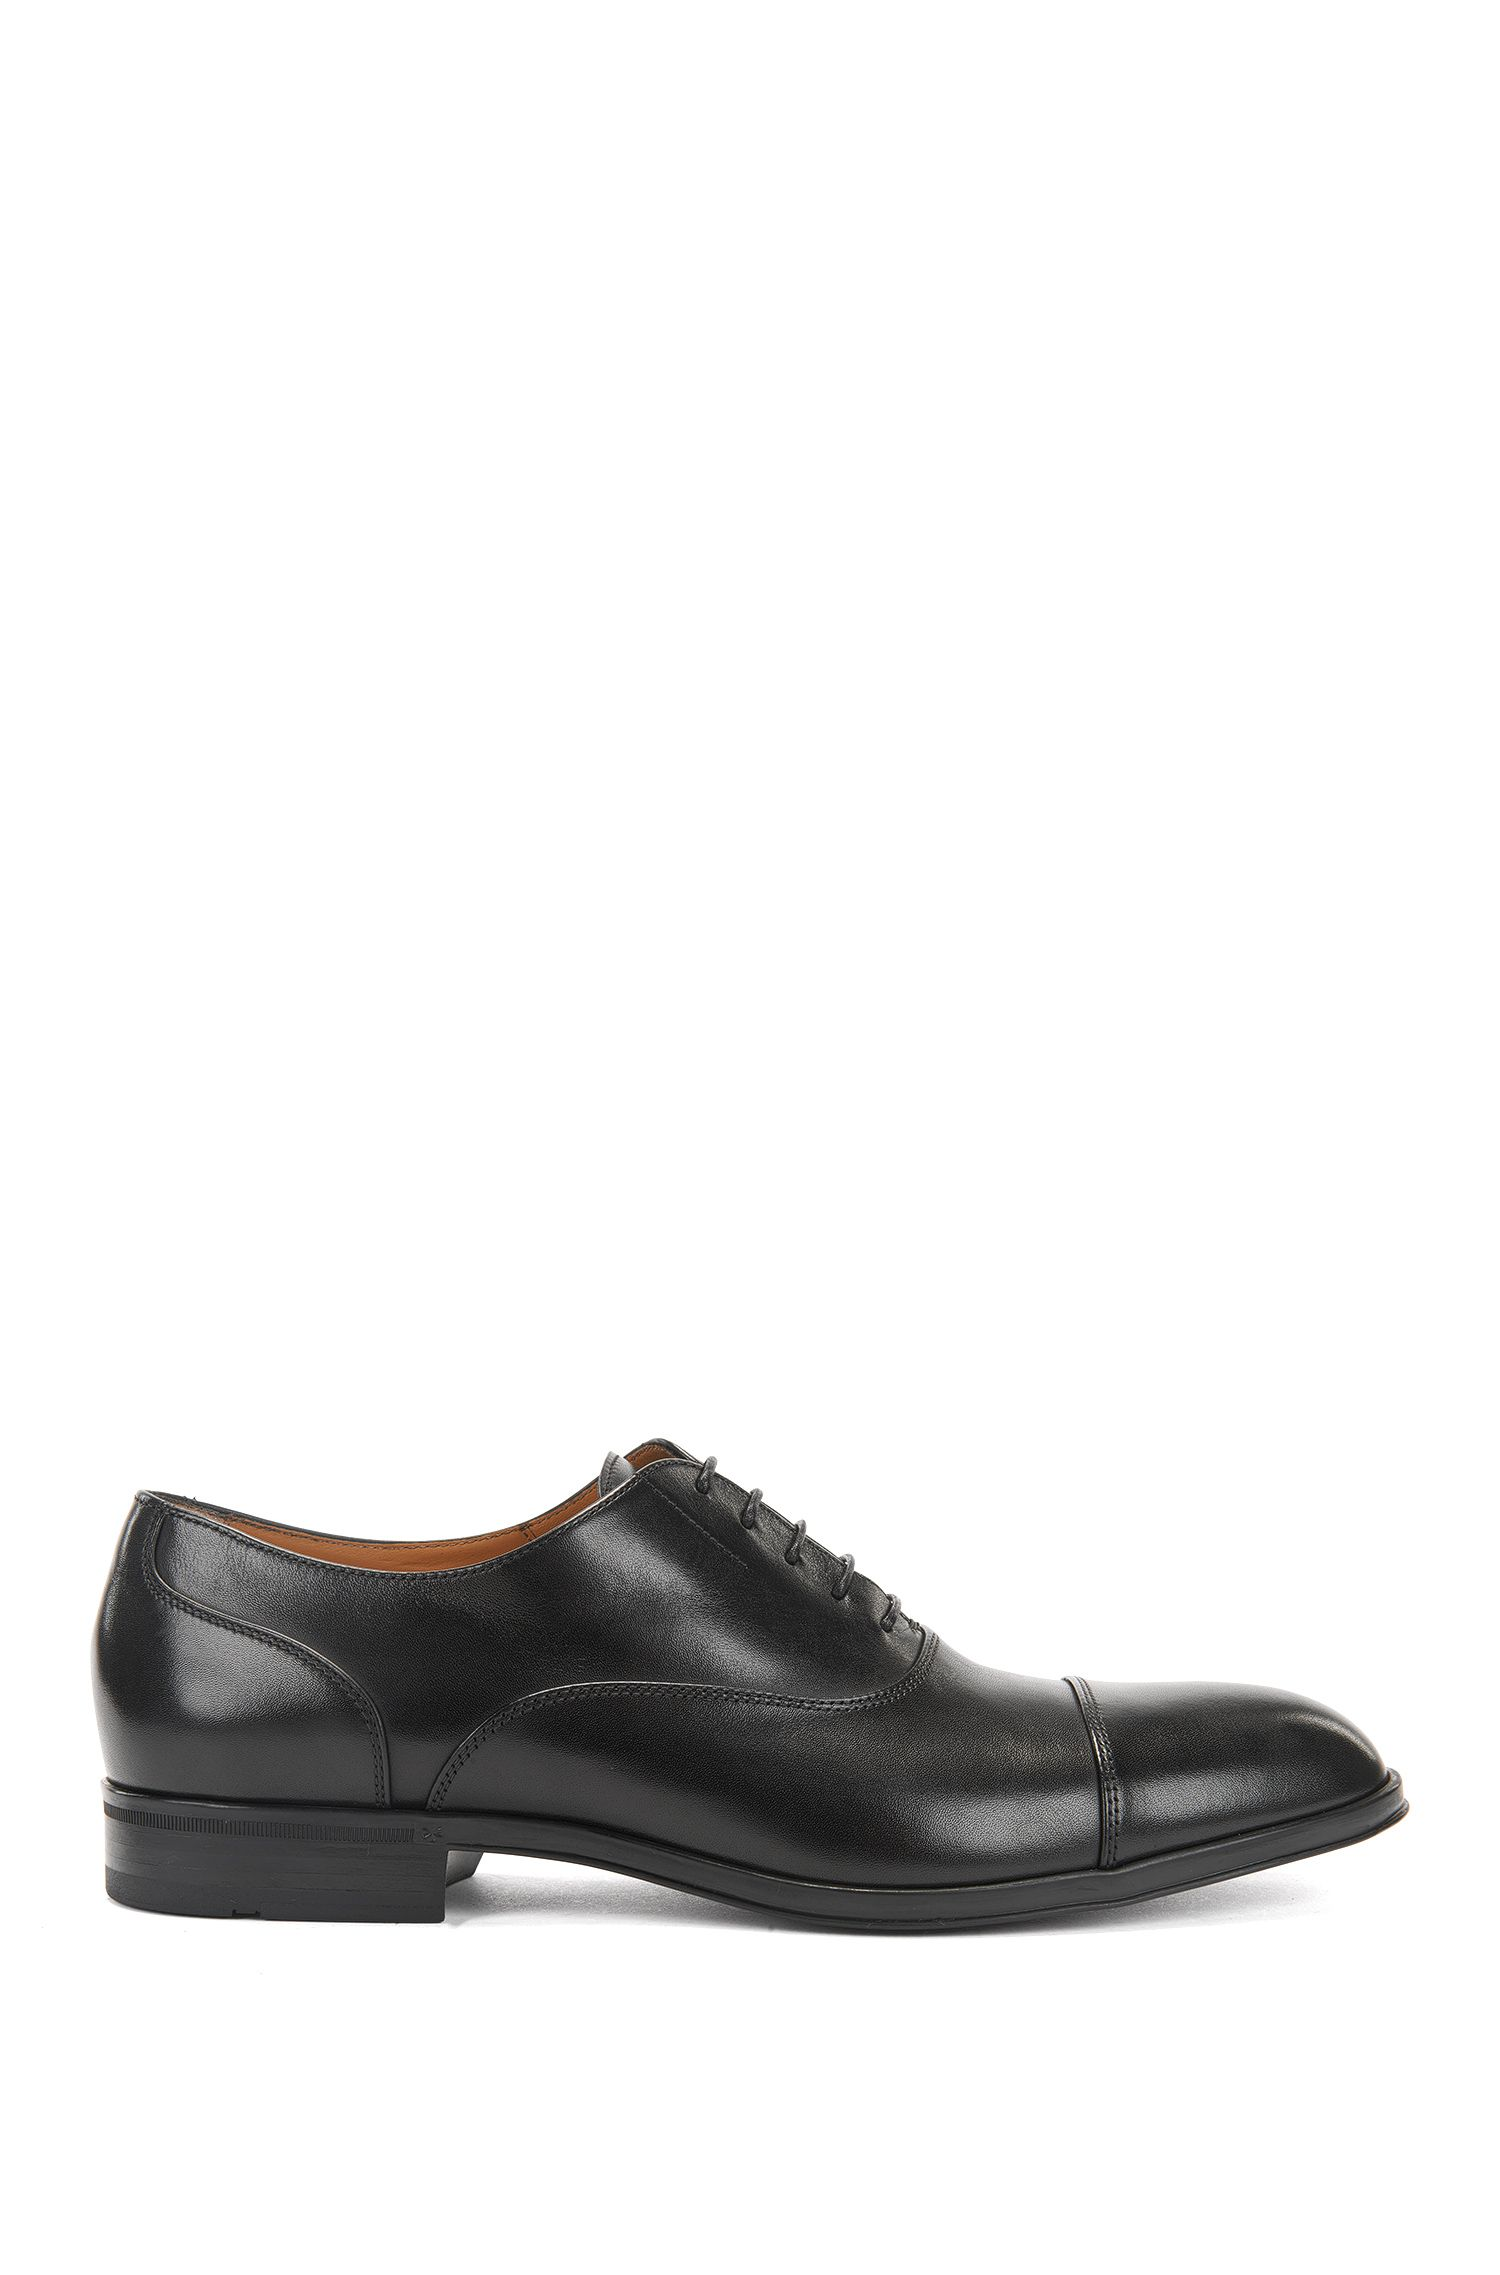 Italian-made Oxford shoes in smooth leather